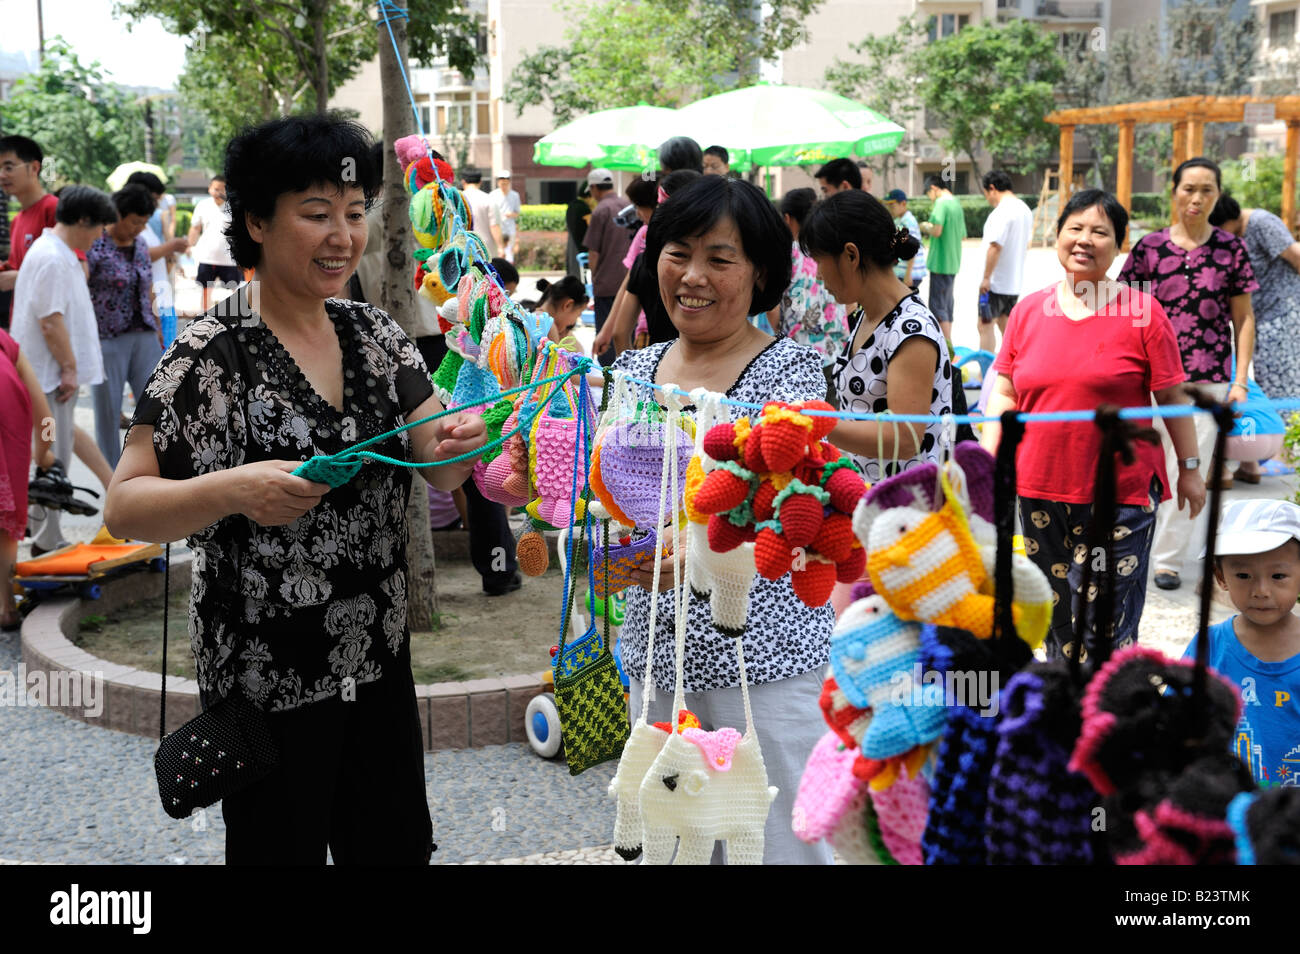 Flea market on Sunday in a community in Beijing, China. 13-Jul-2008 - Stock Image